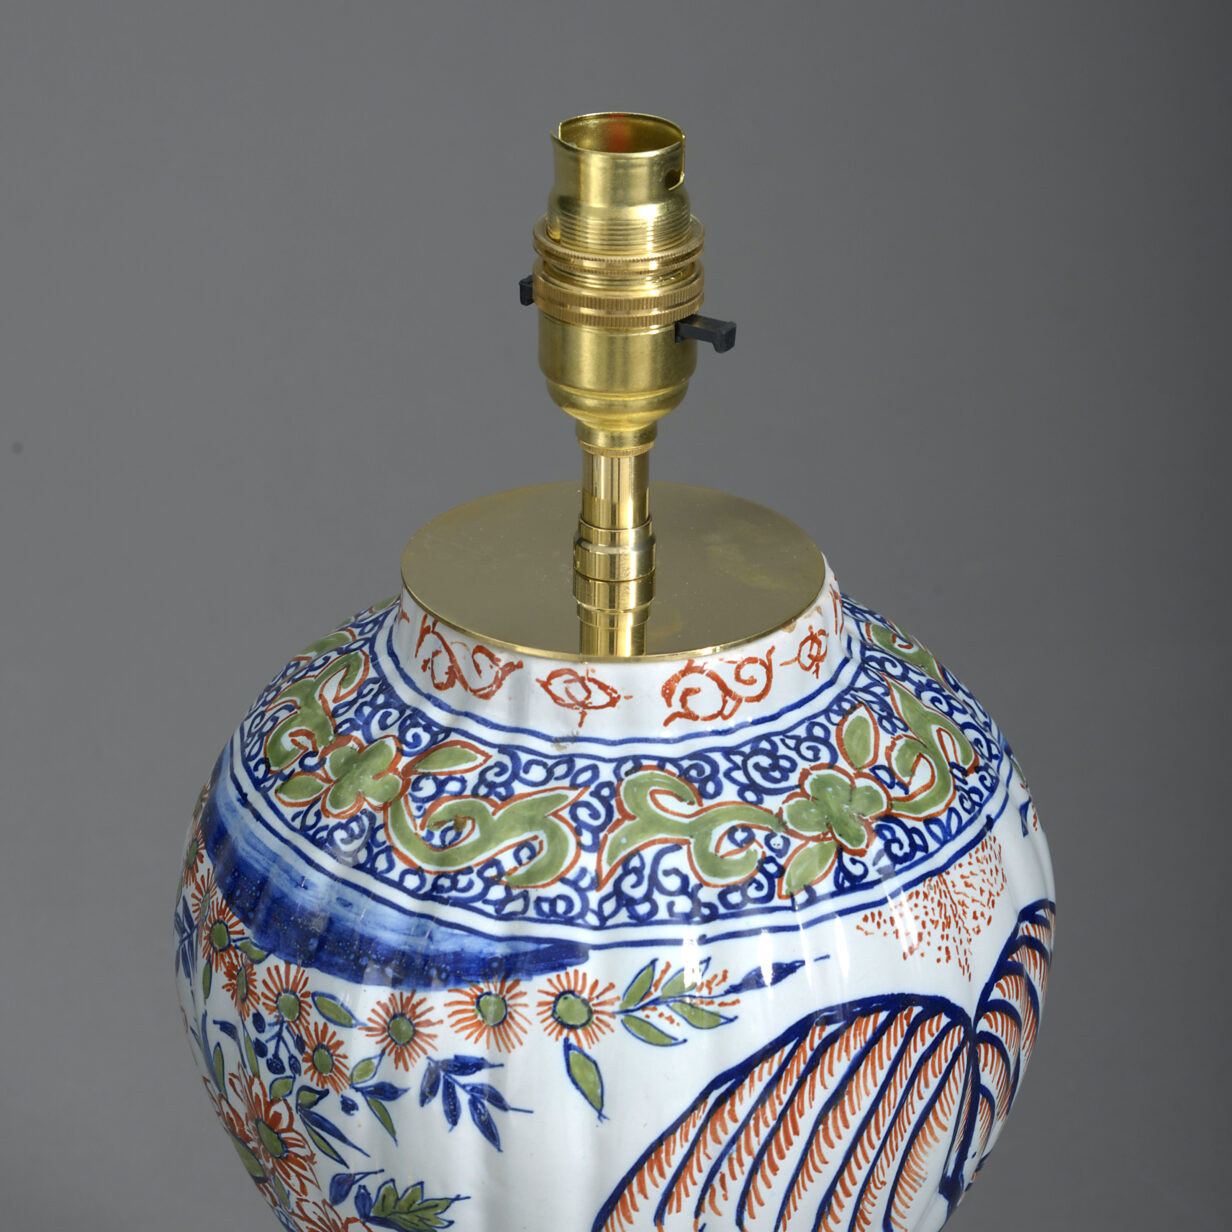 Pair of Polychrome Delft Vase Lamps